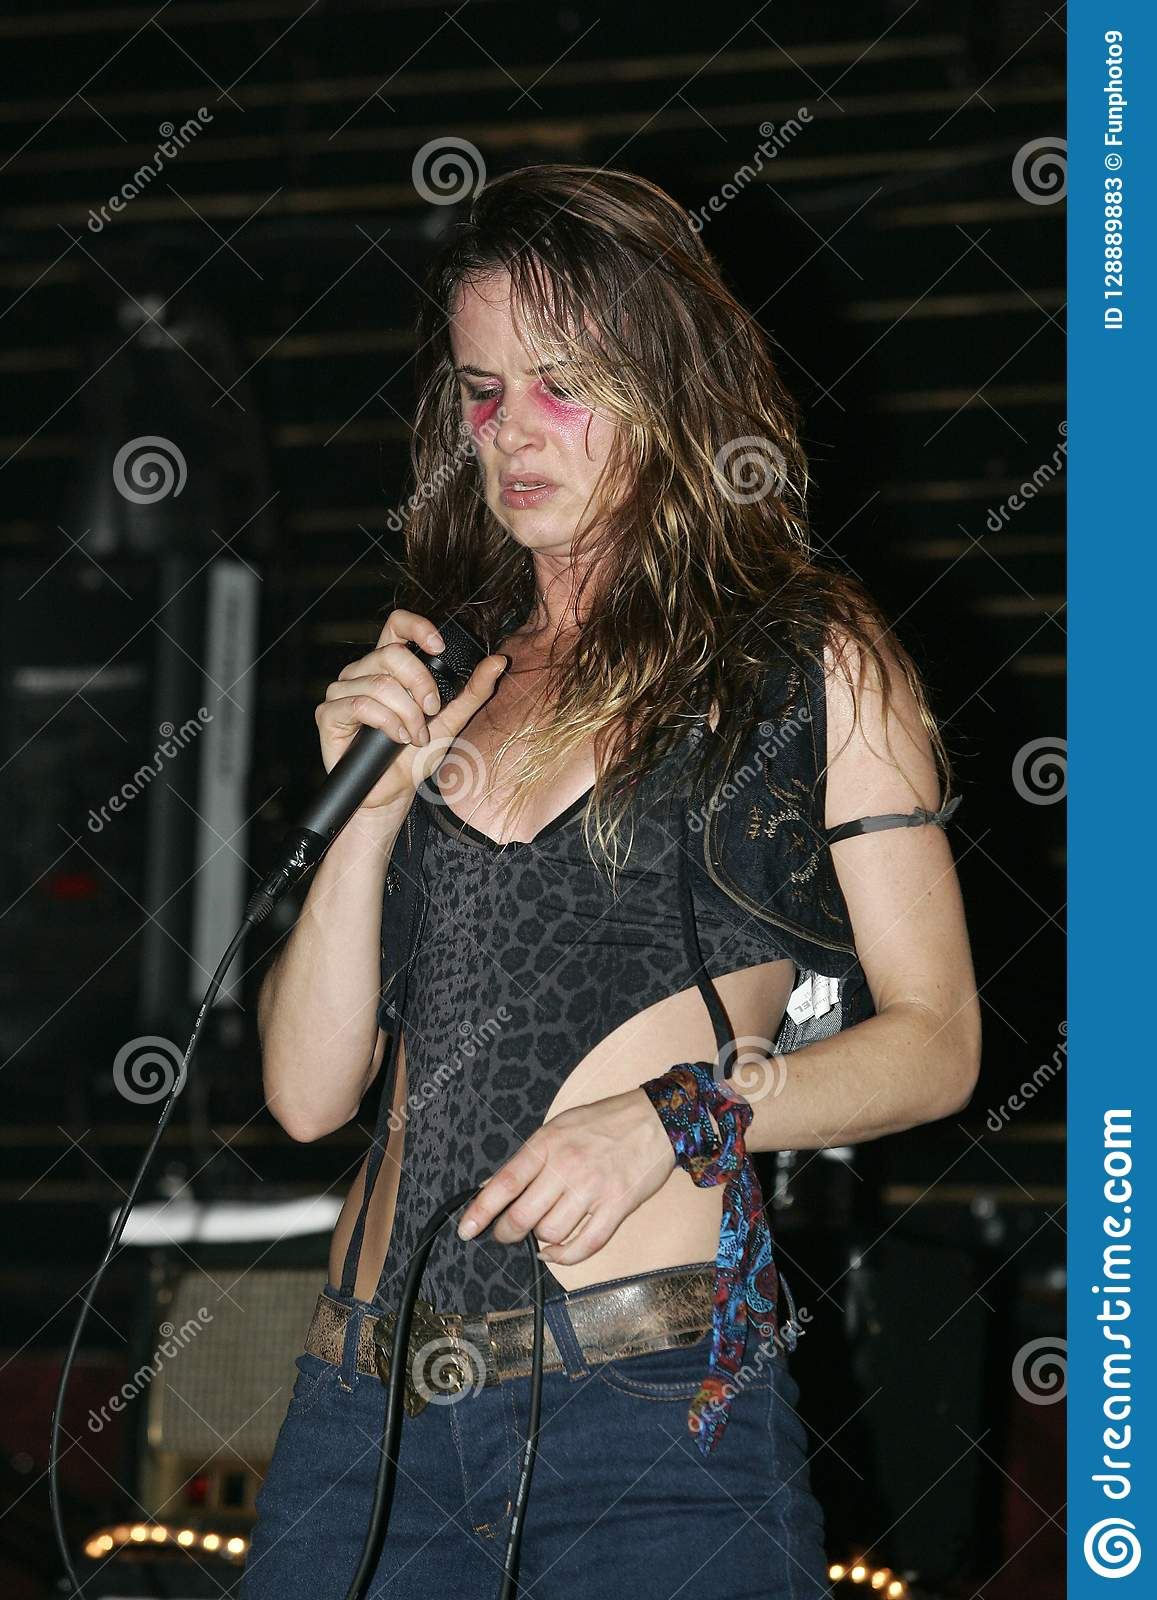 Juliette lewis lick really. agree